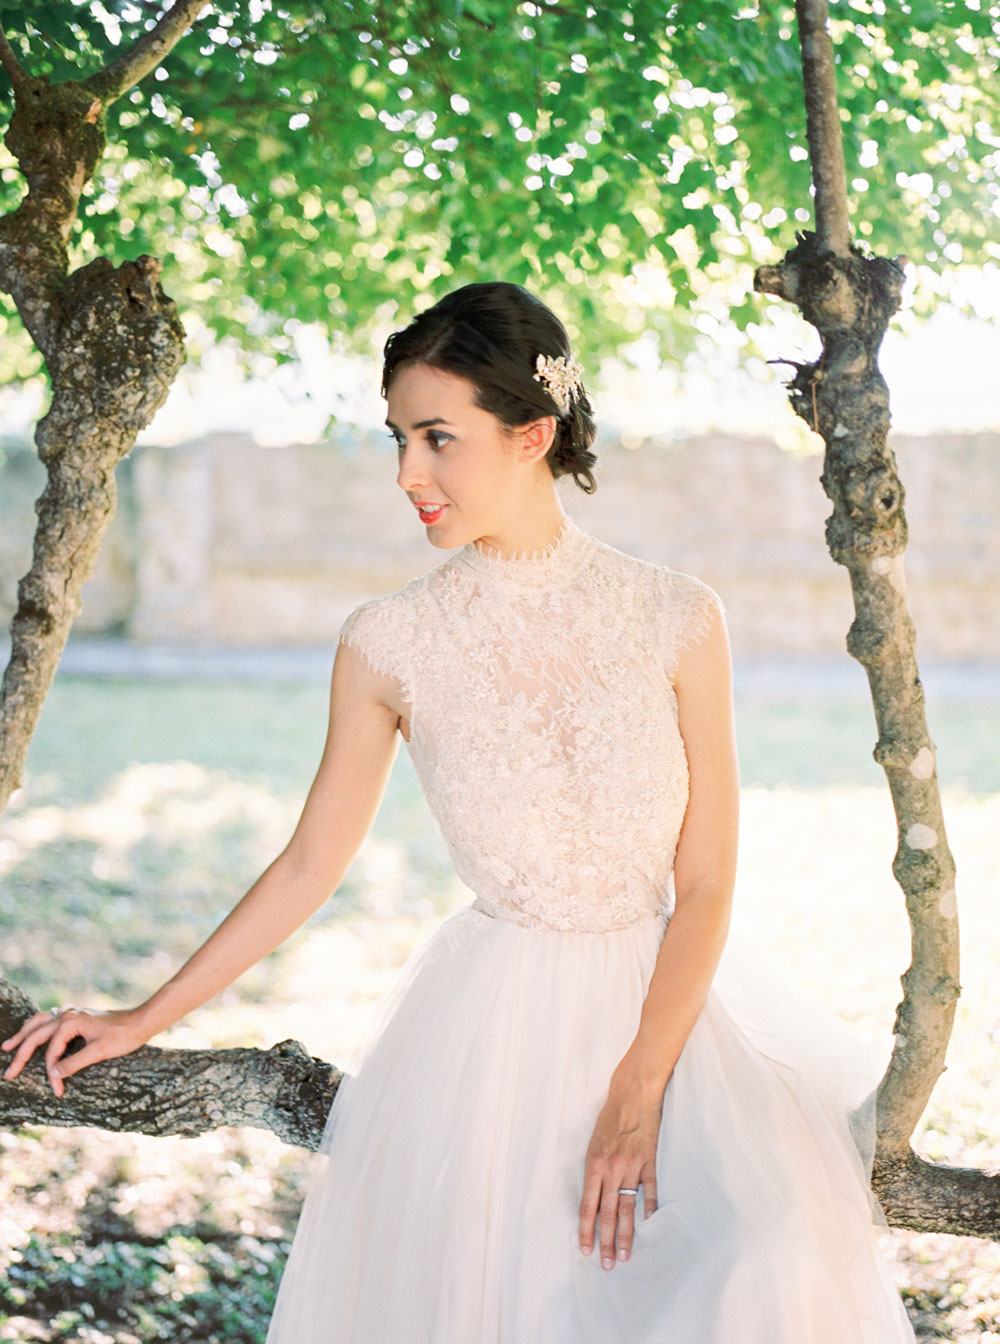 Linari-Tuscany-Elopement-Courtney-Michaela-272